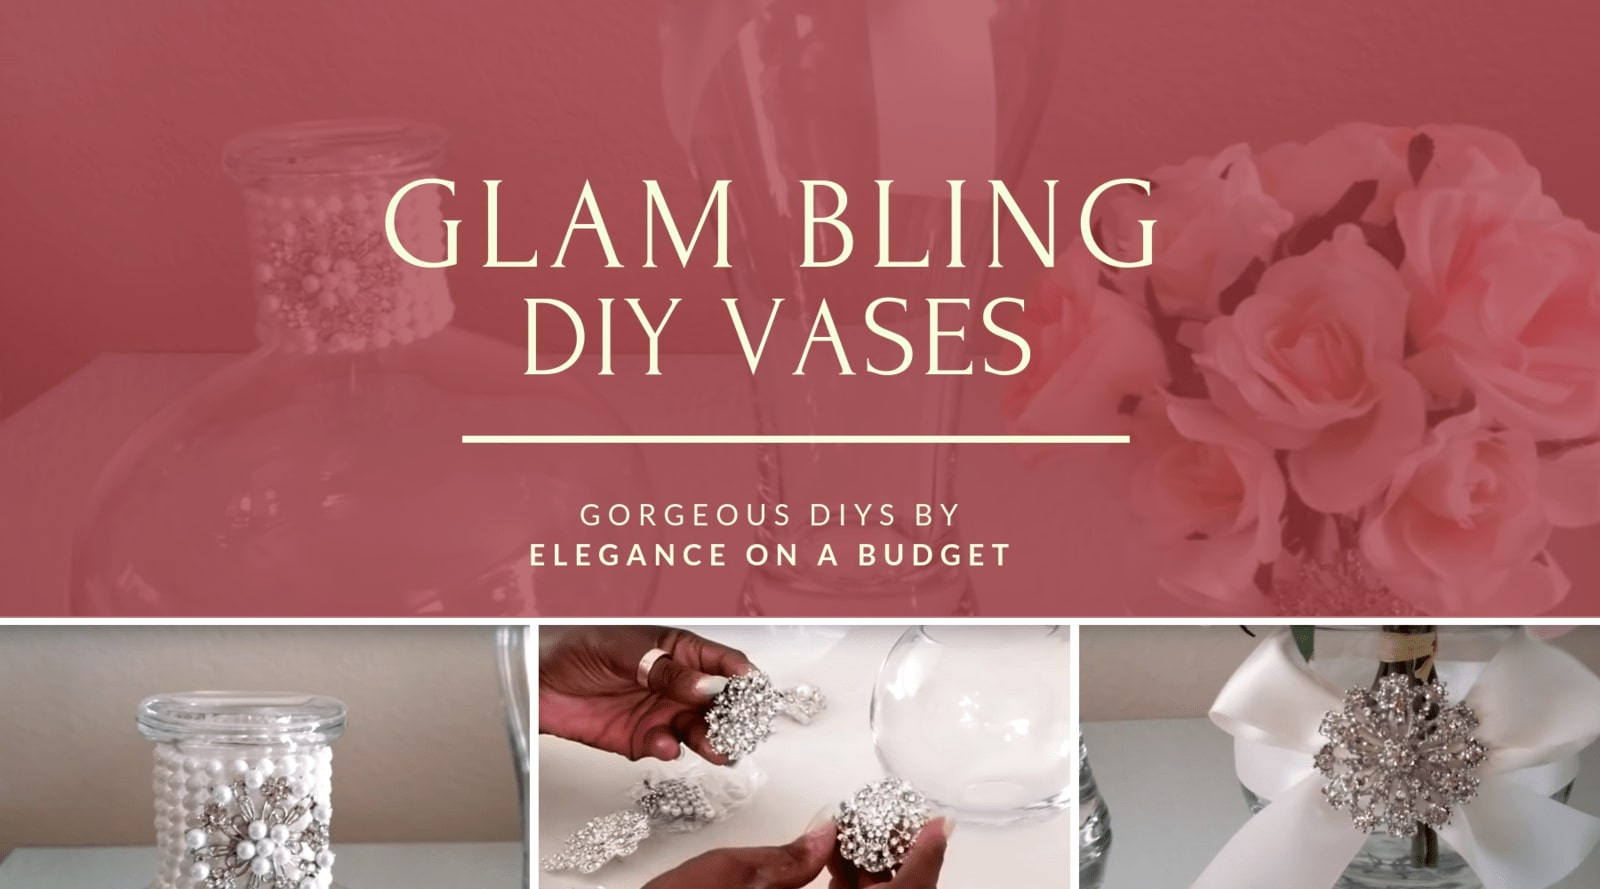 Gorgeous Glam Bling Vases By Elegance on a Budget